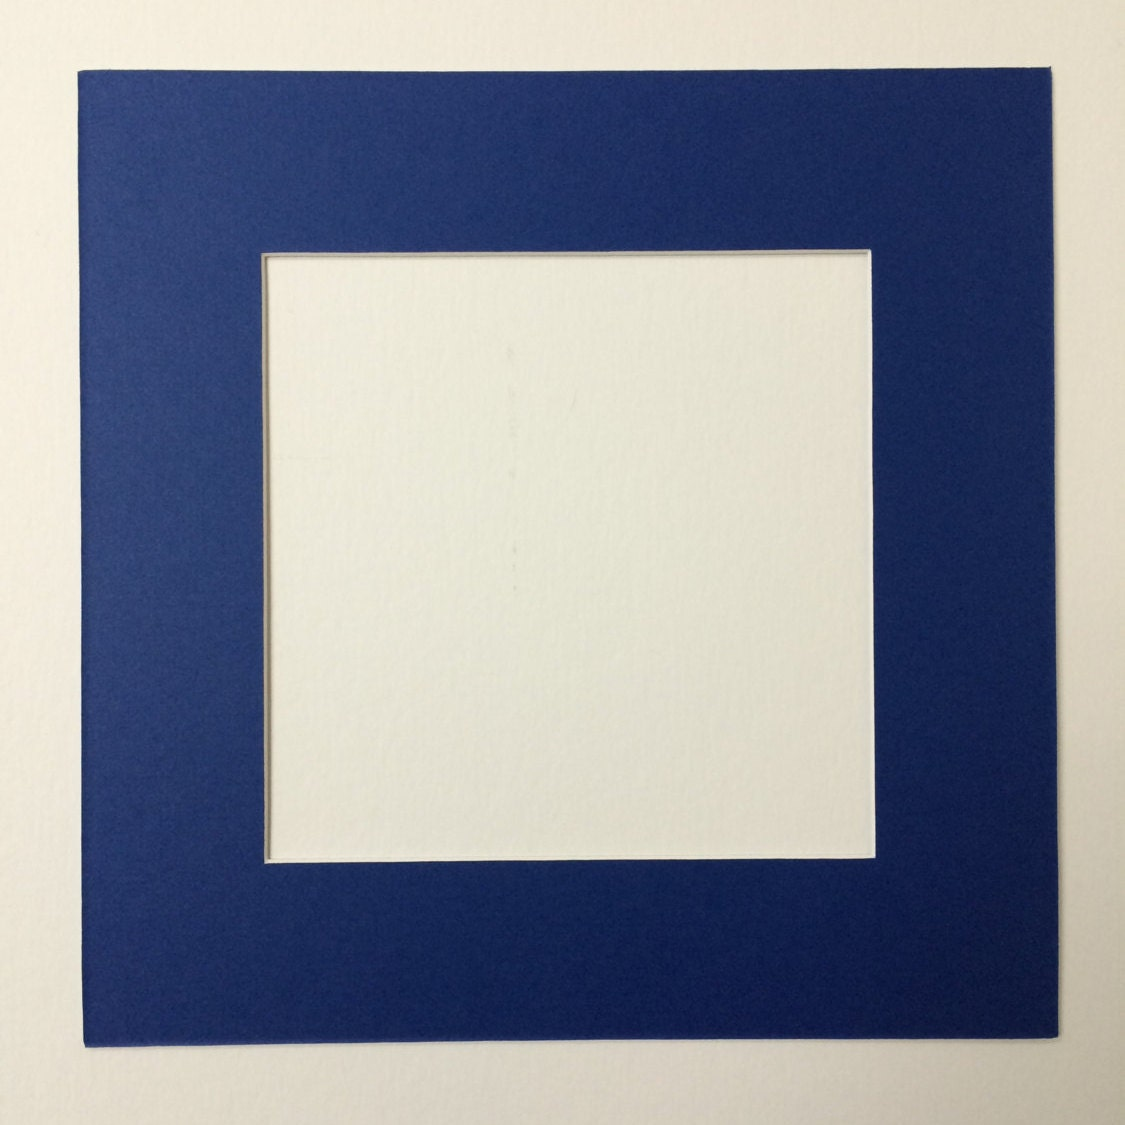 Pack Of 6 12x12 Square Royal Blue Picture Mats With